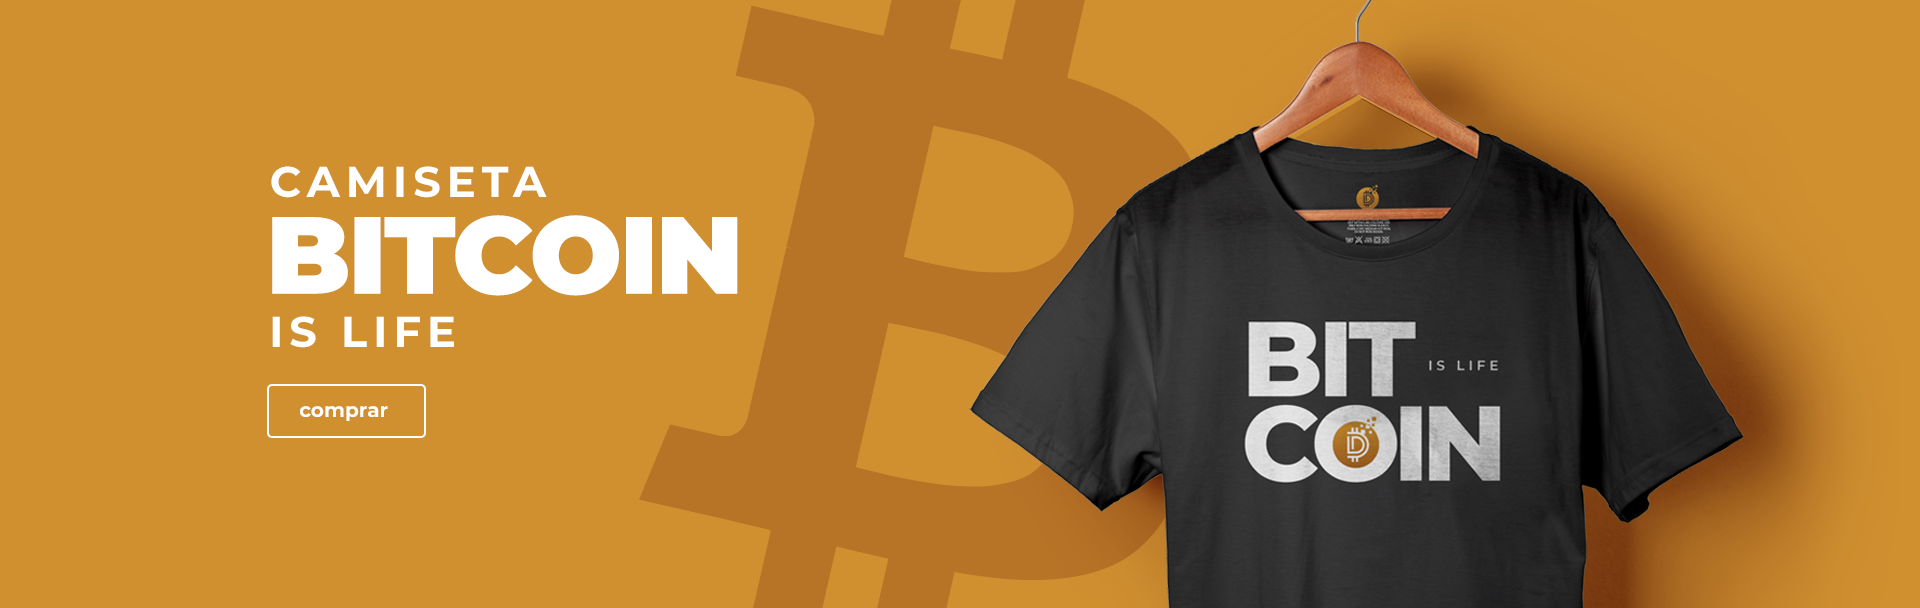 Camisa Bitcoin is Life